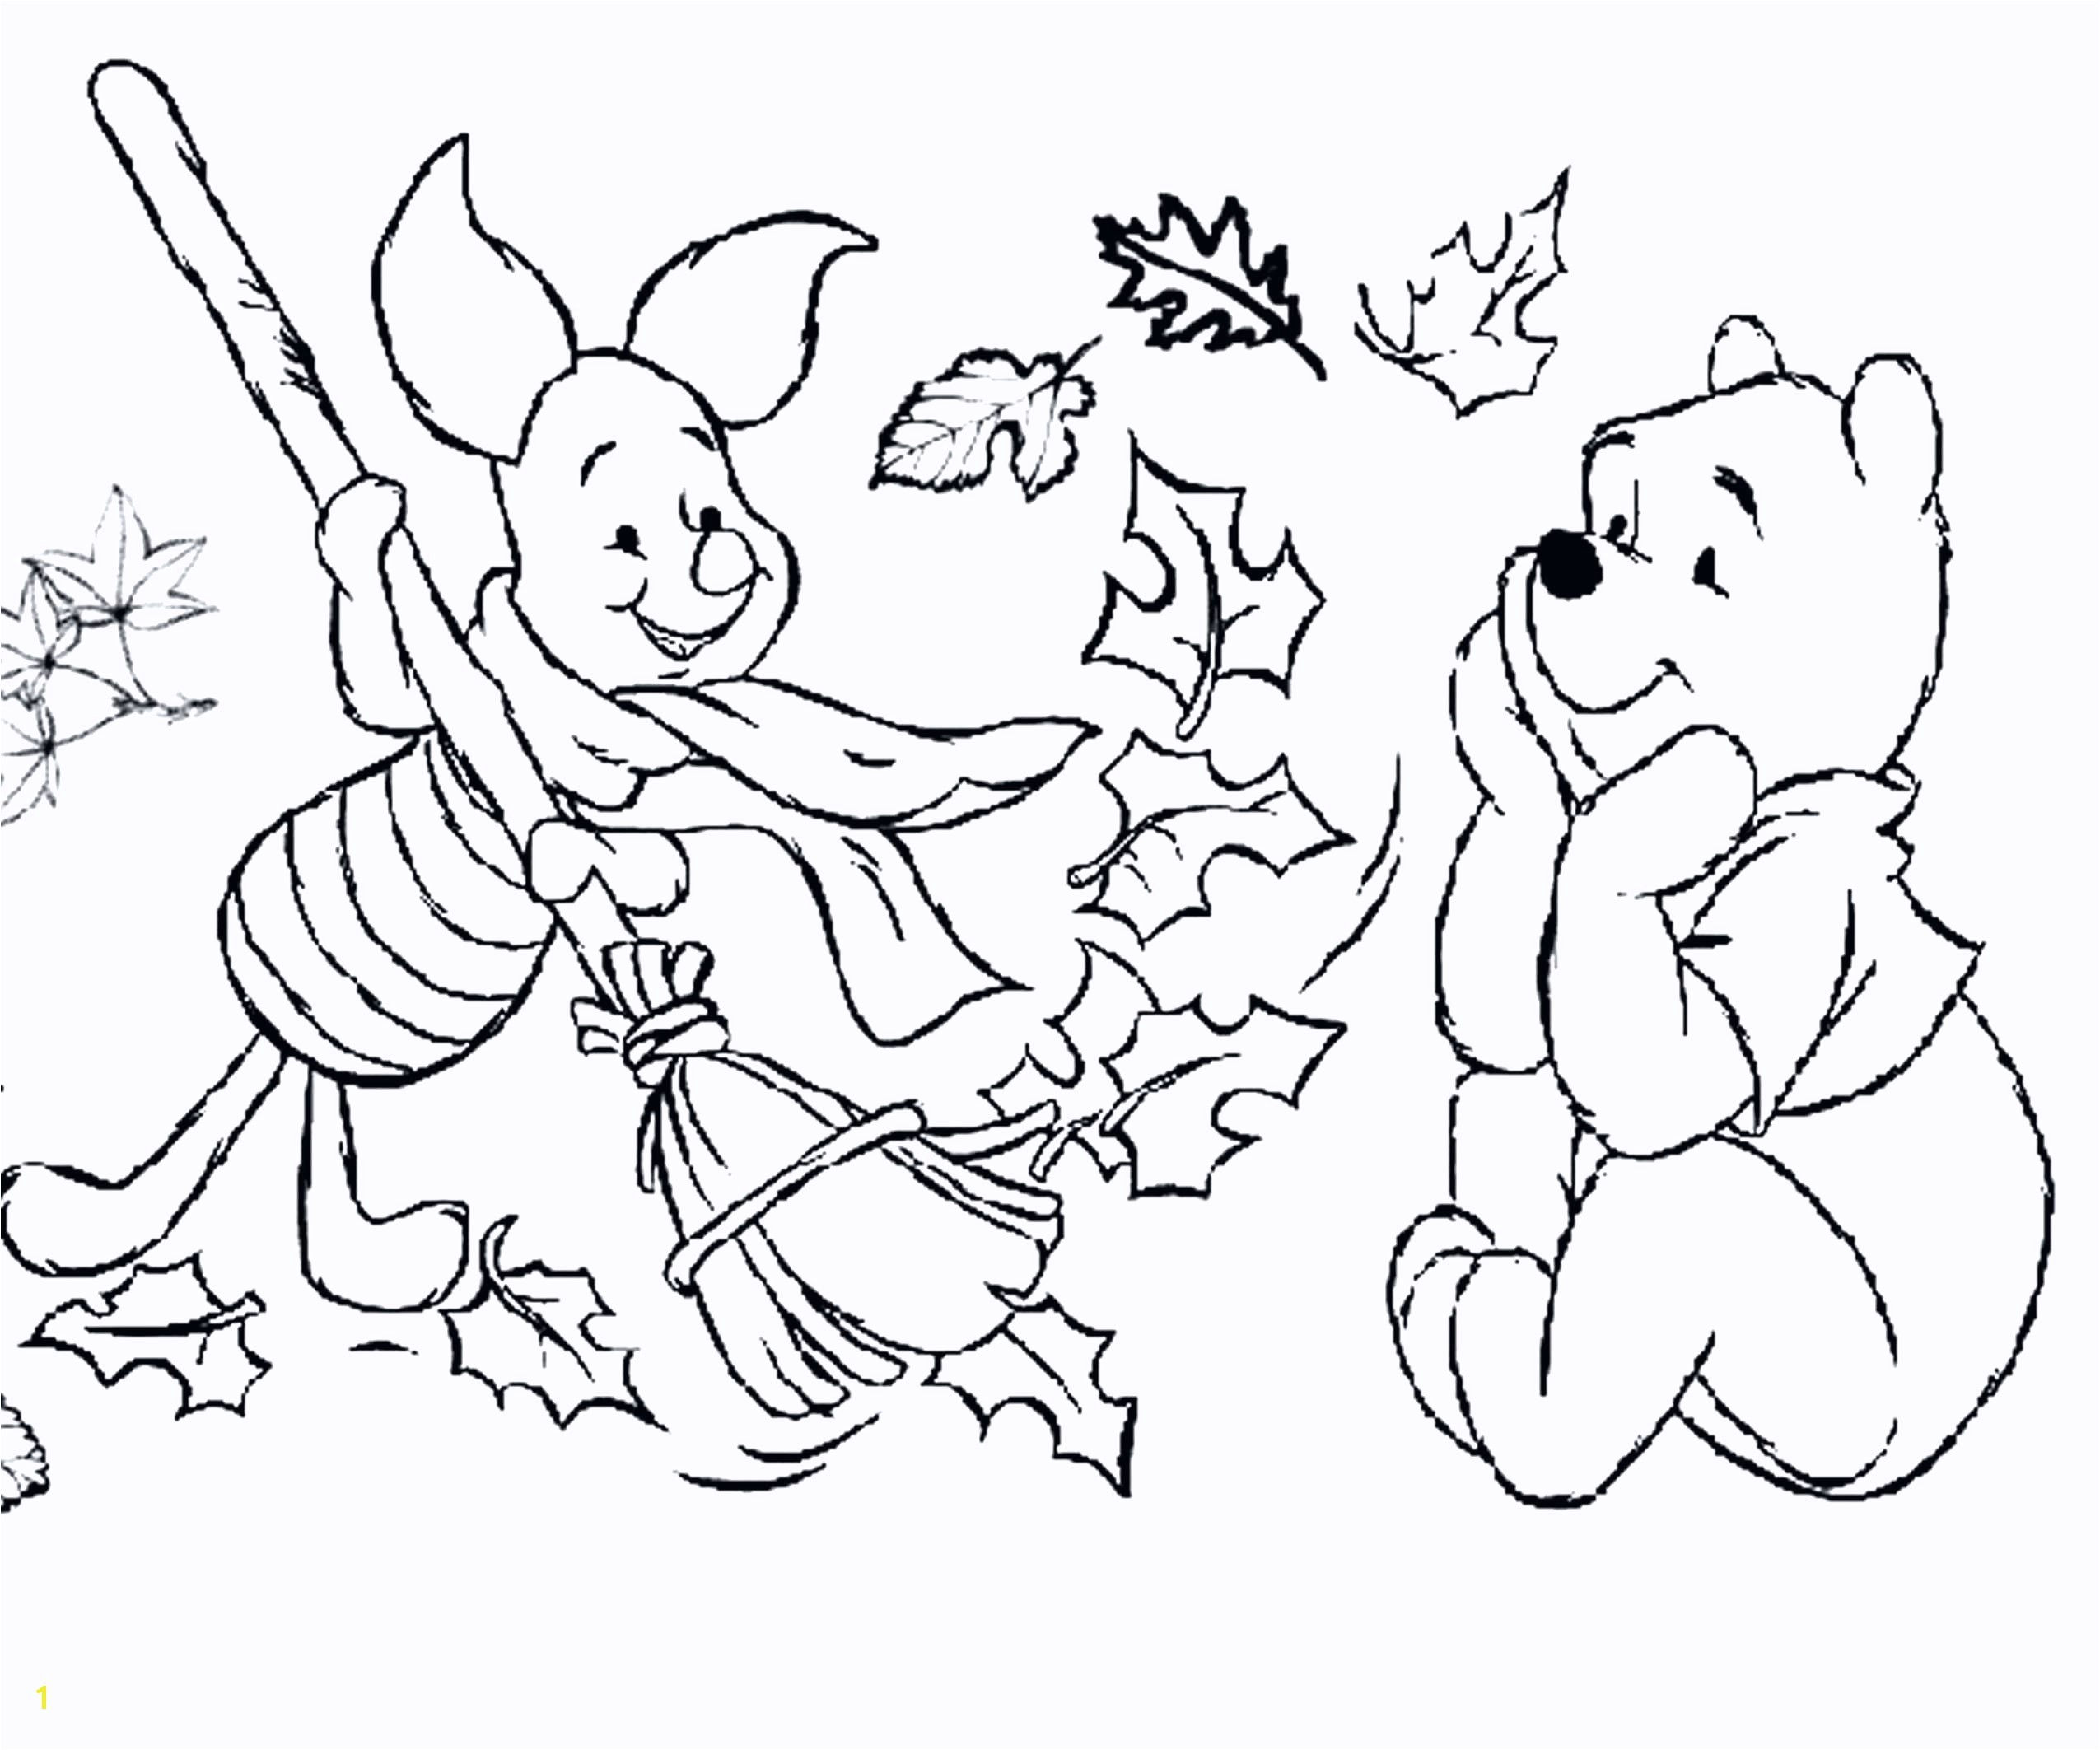 Human Heart Coloring Pages  Gallery 3i - To print for your project